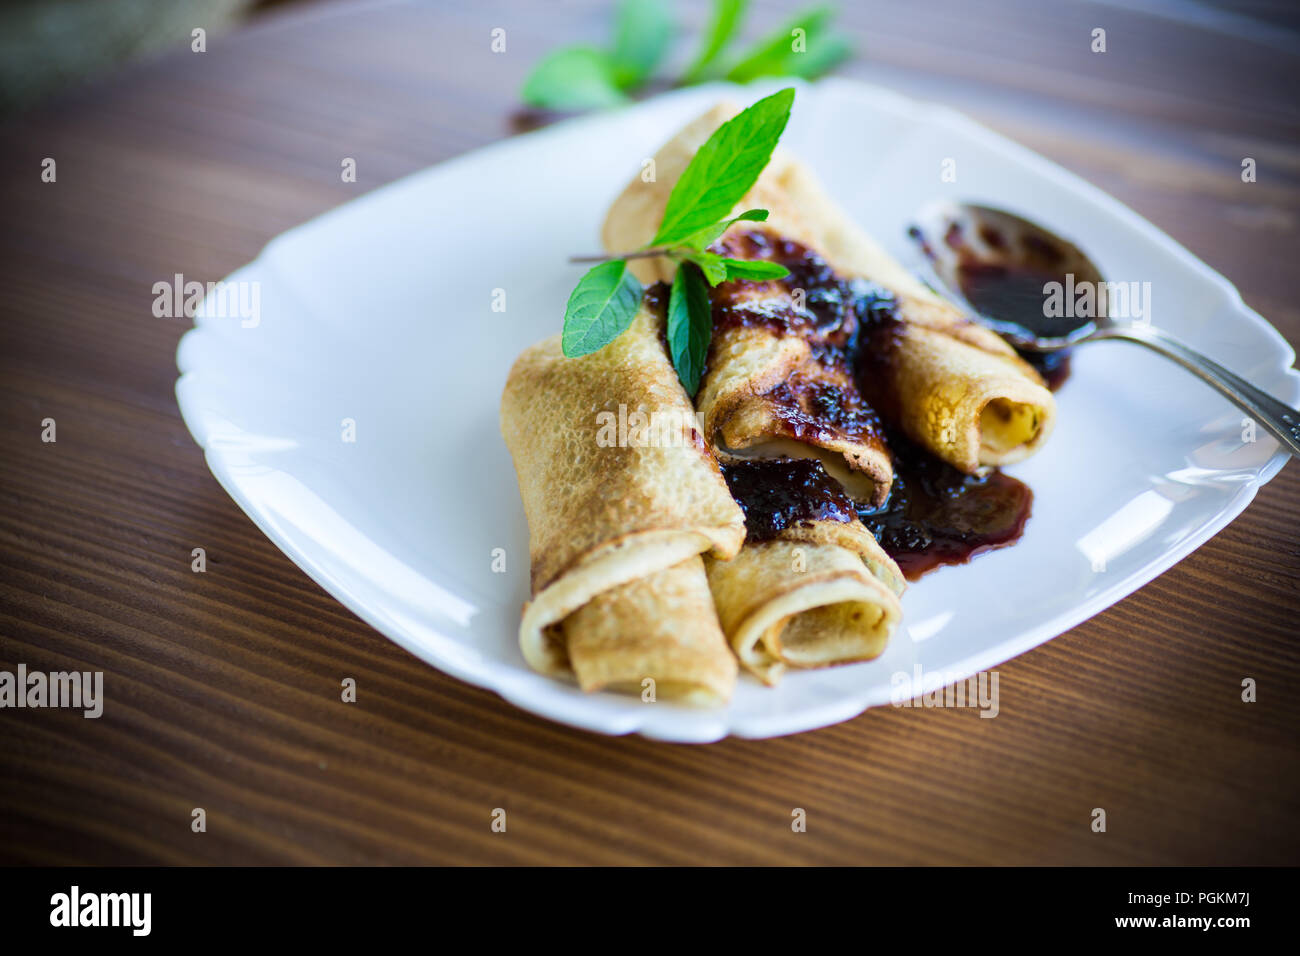 thin fried pancakes stuffed with jam in a plate on a wooden table - Stock Image